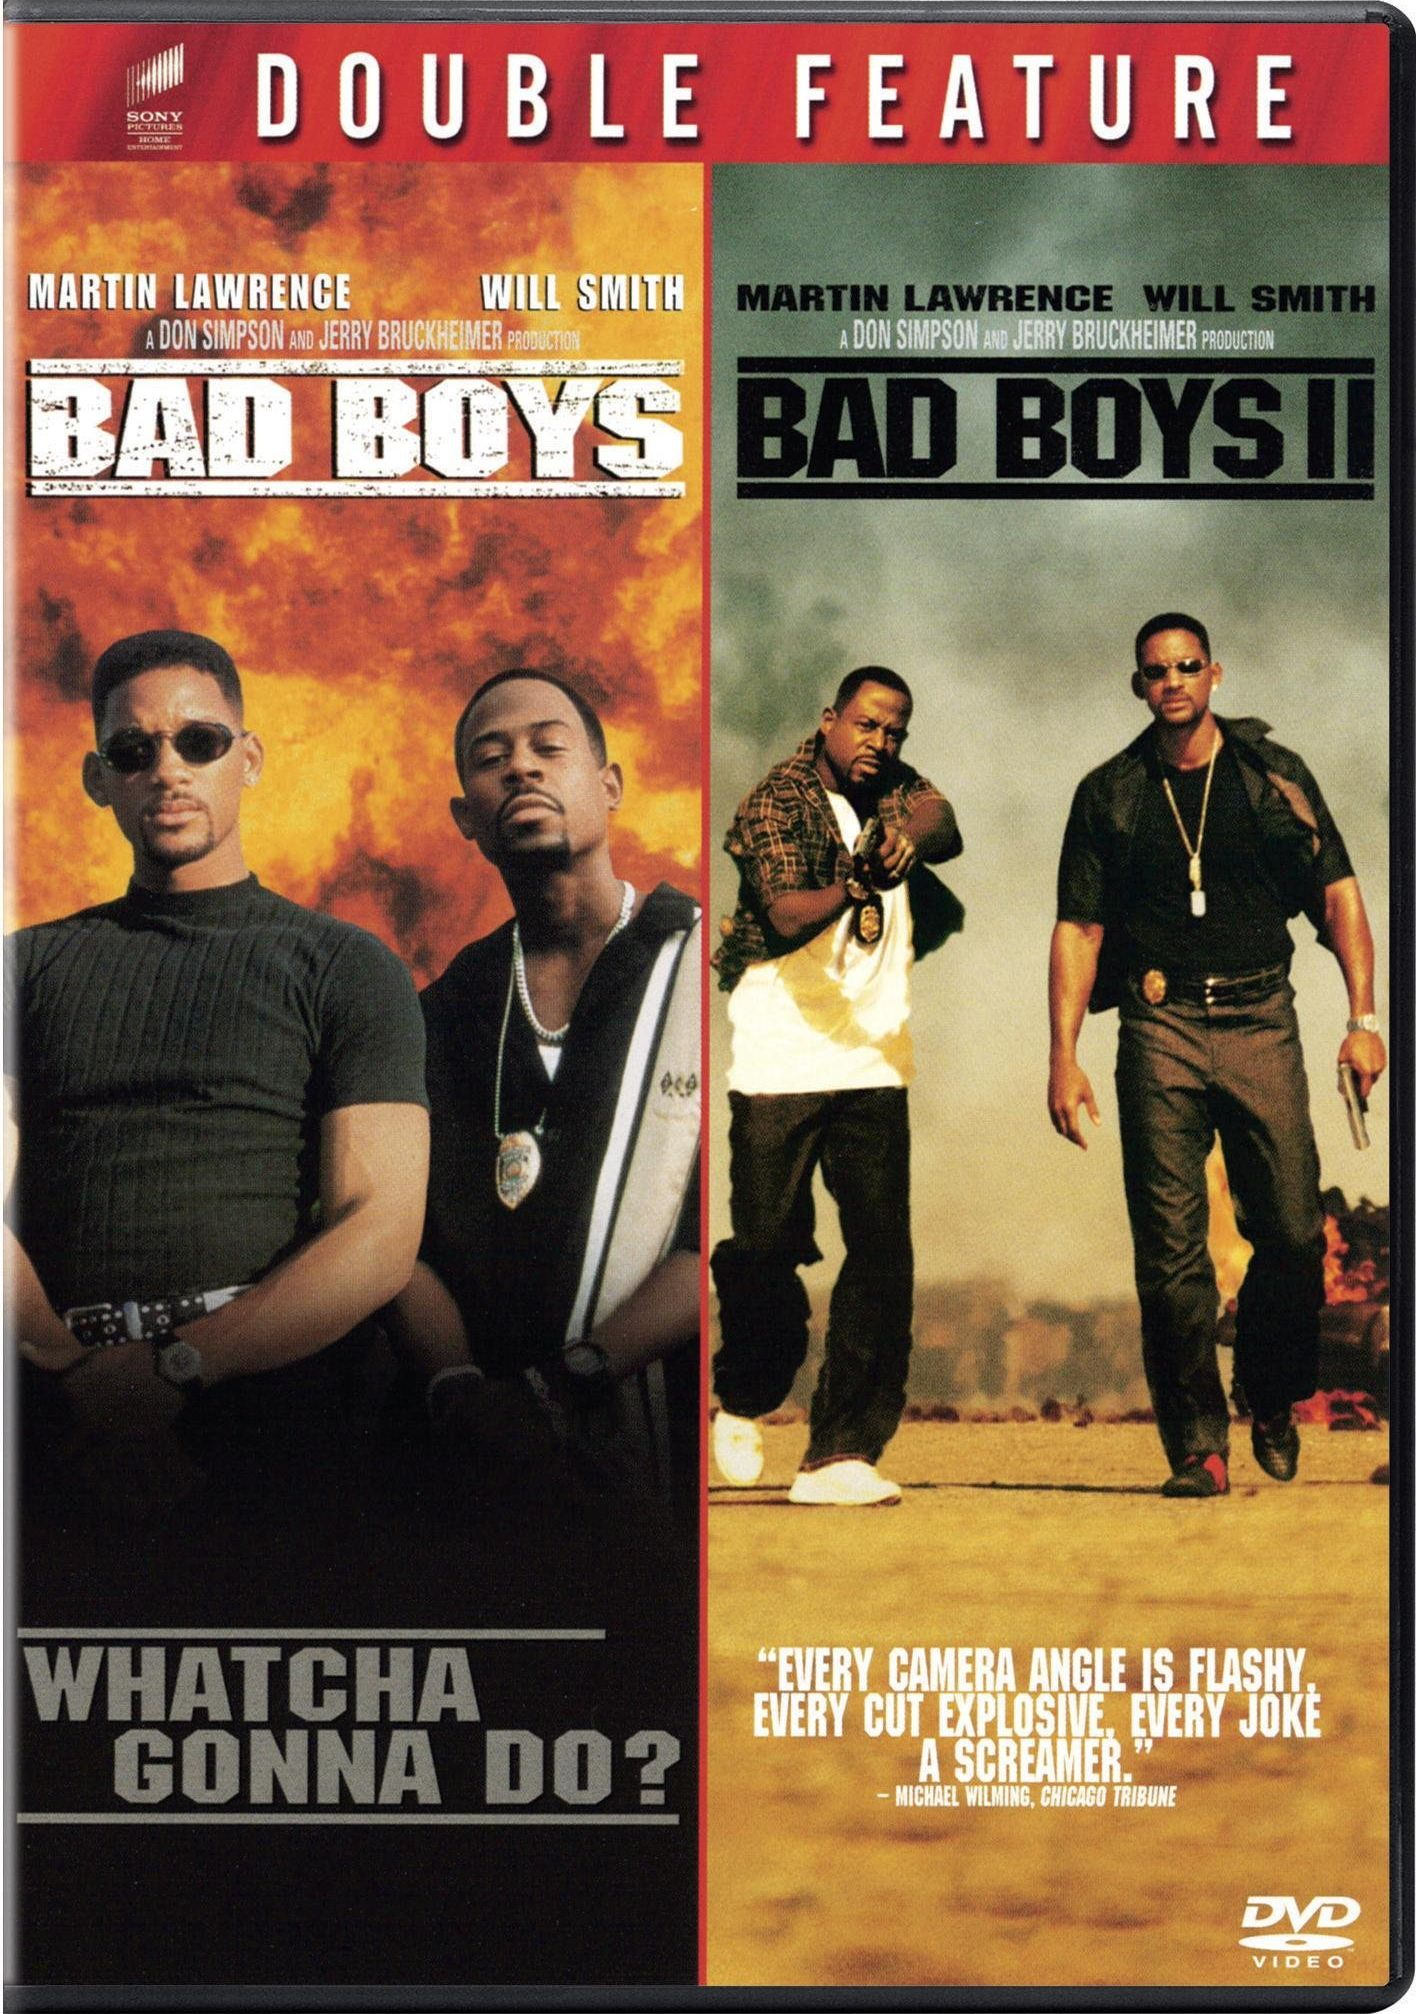 Bad Boys Dvd Release Date - Bad Boys